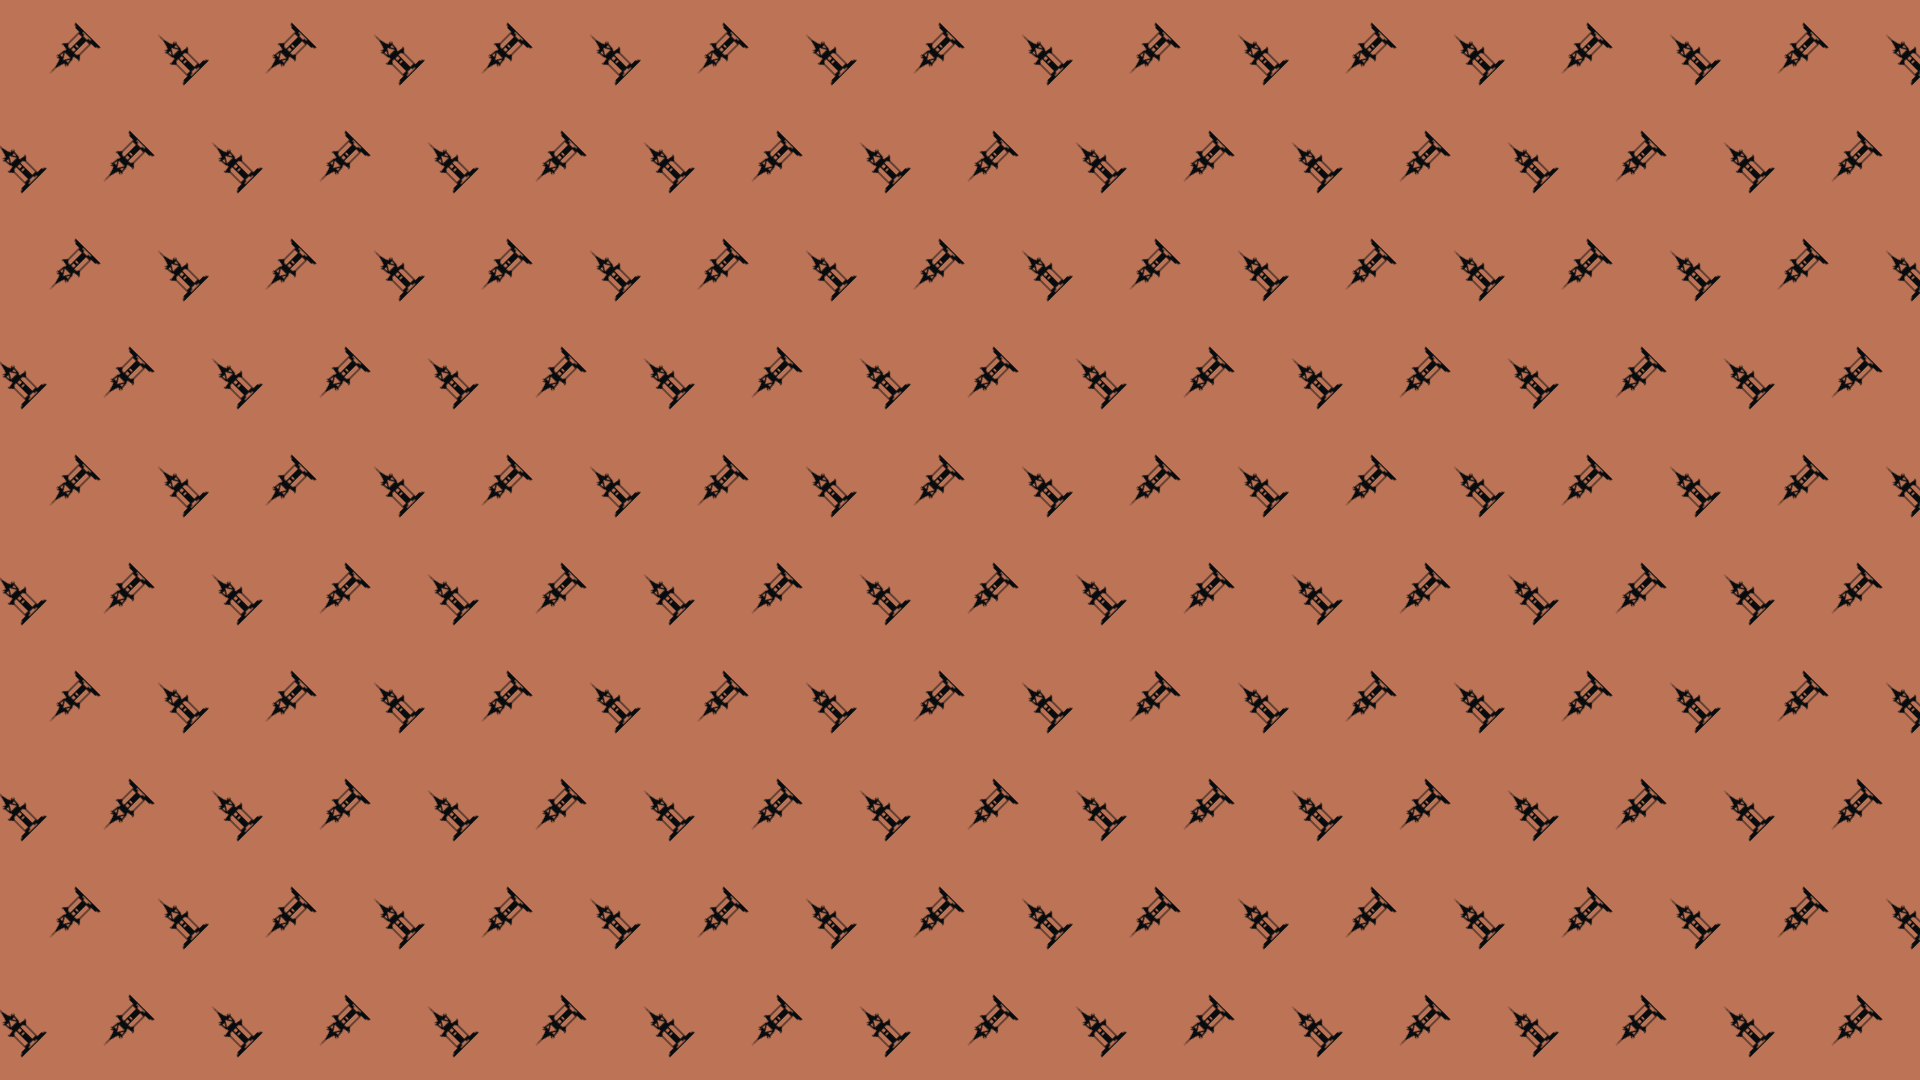 Brown,                Pattern,                Sky,                Line,                Font,                Wood,                Angle,                Symmetry,                Computer,                Wallpaper,                Killing,                Cambodia,                Asia,                 Free Image